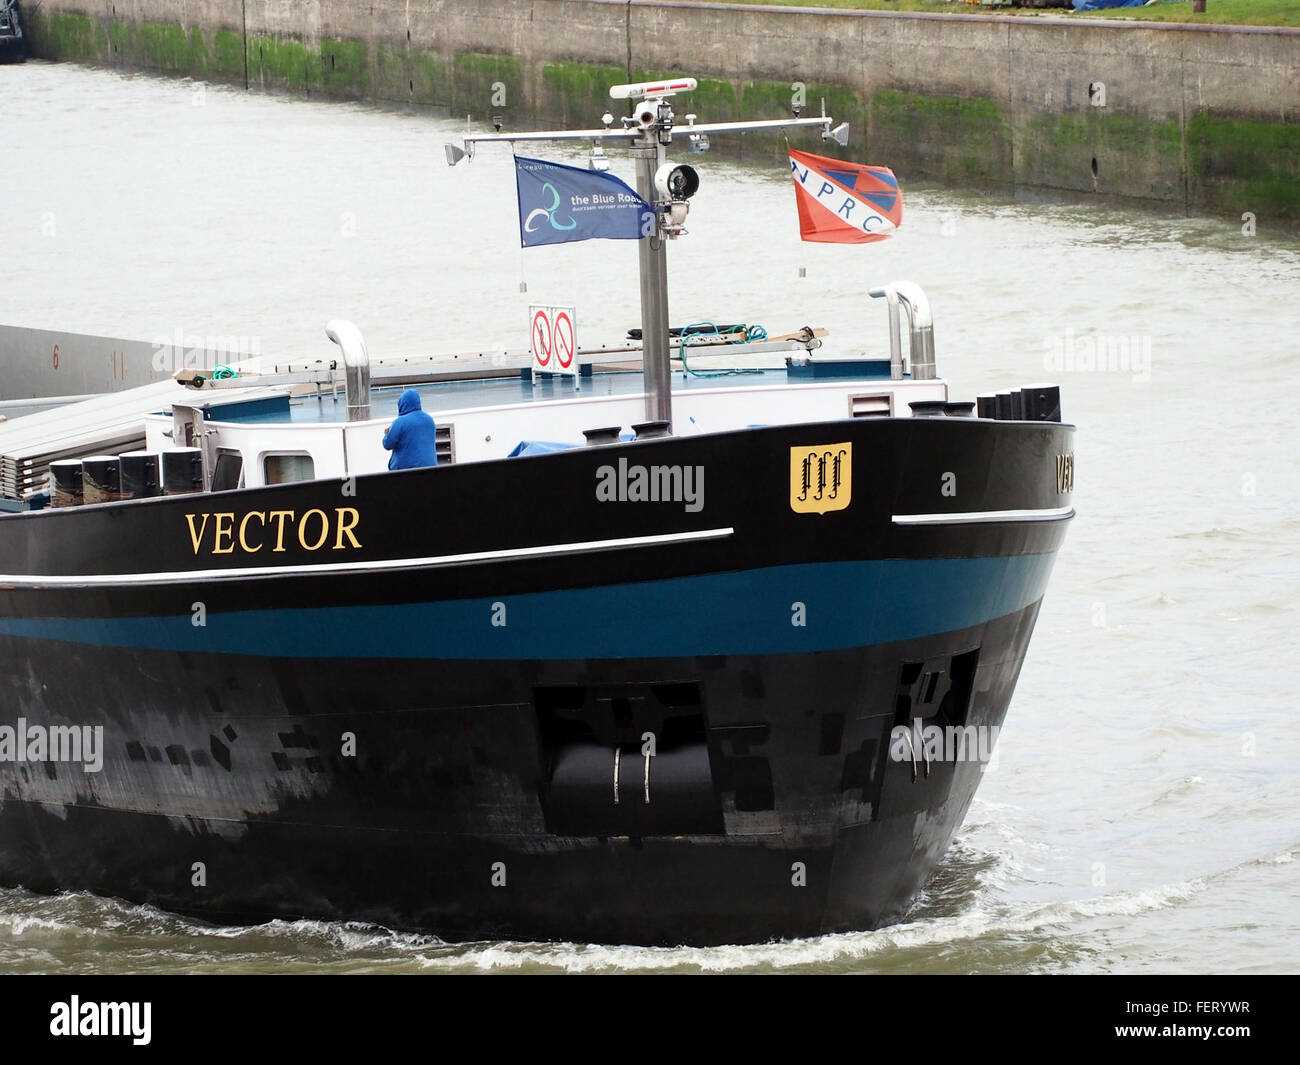 Vector (ship, 2008), ENI 02331015 Port of Antwerp pic6 - Stock Image